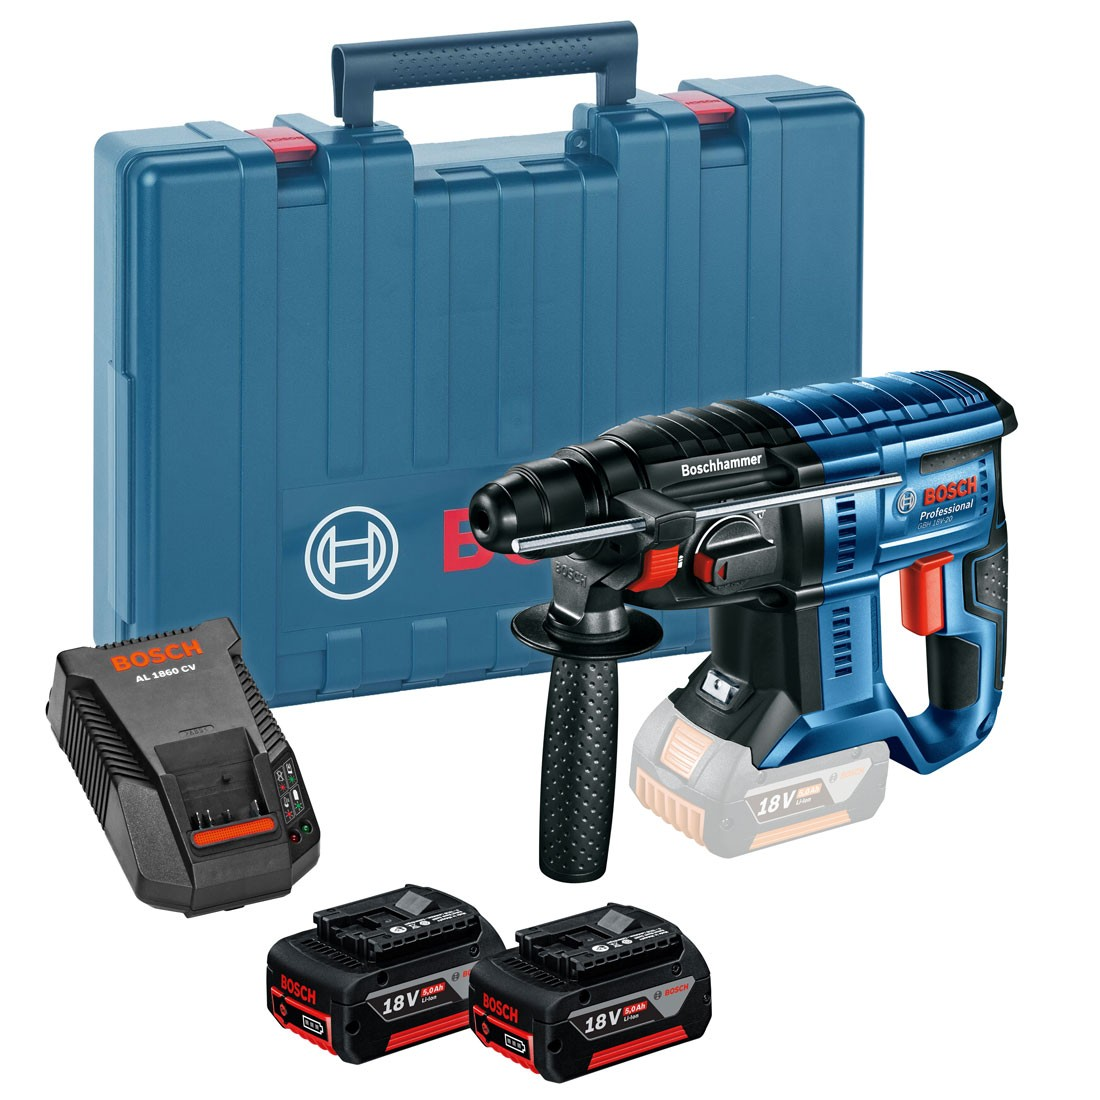 bosch gbh 18 v 20 sds plus cordless rotary hammer inc 2x. Black Bedroom Furniture Sets. Home Design Ideas